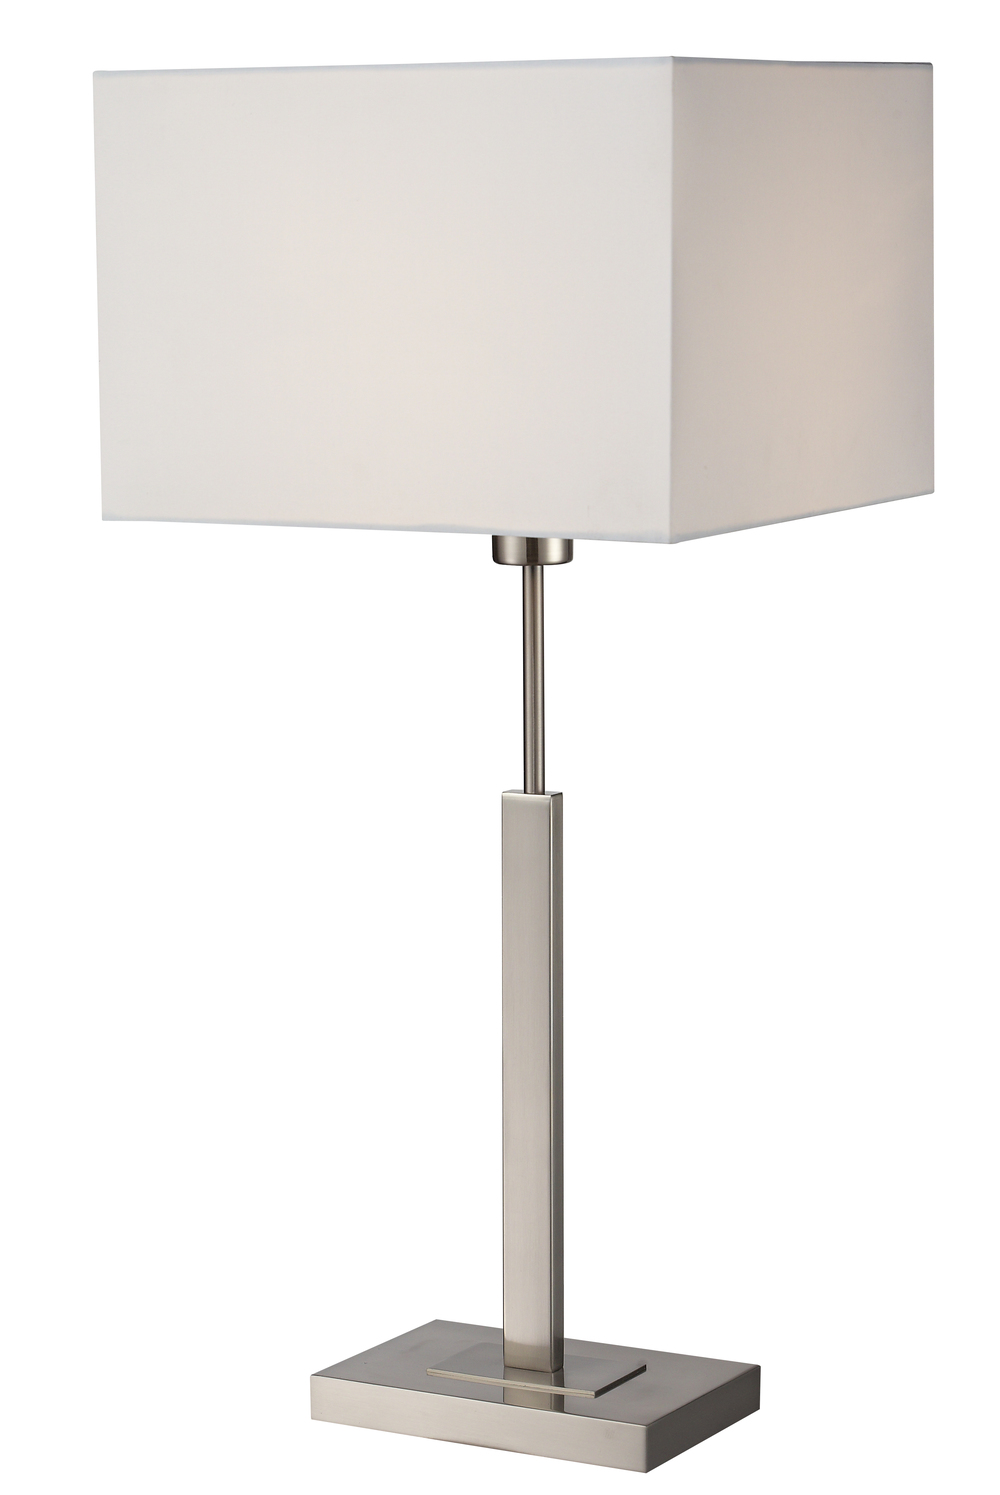 10017 | TOWER TABLE LAMP